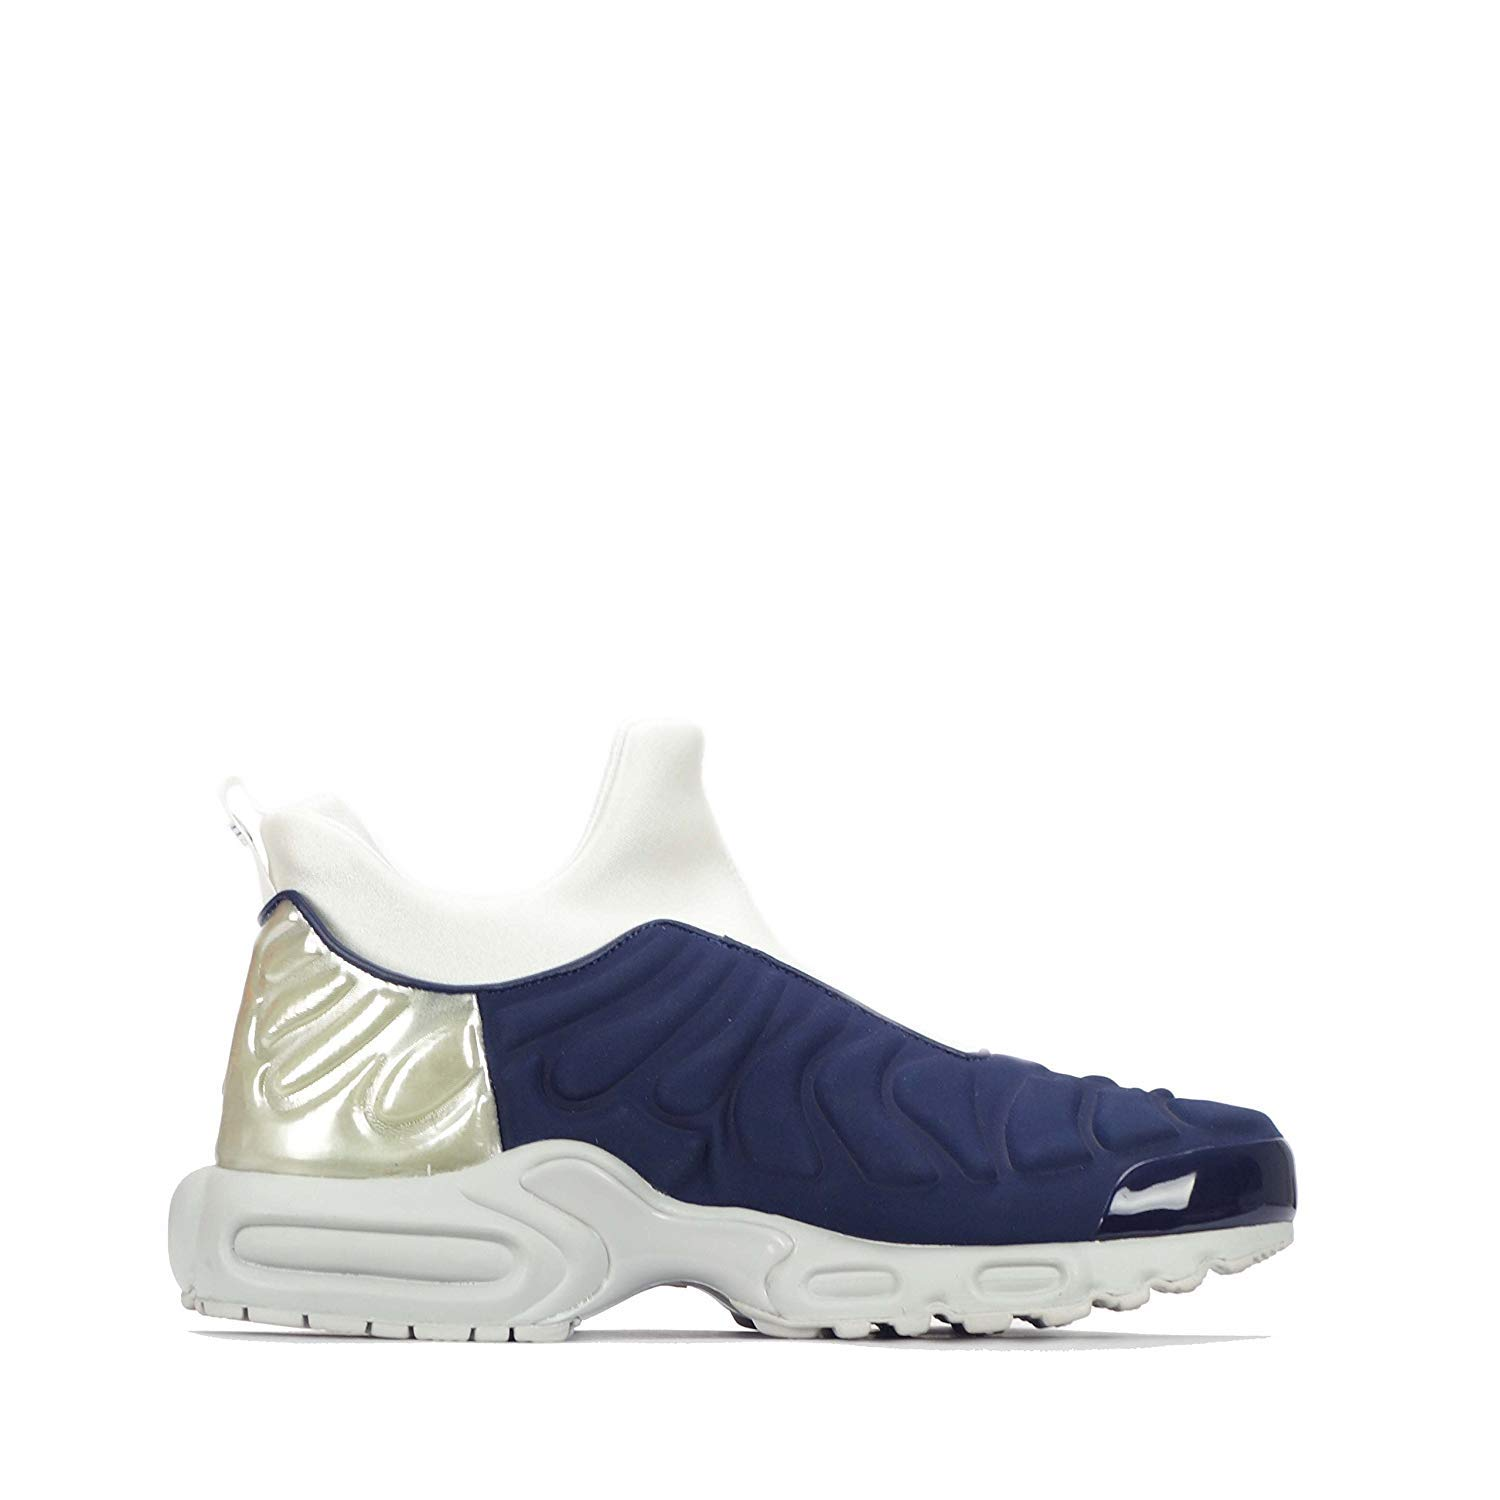 531bcd8763 Amazon.com | Nike Womens Air Max Plus Slip Sp Running Trainers 940382  Sneakers Shoes | Road Running